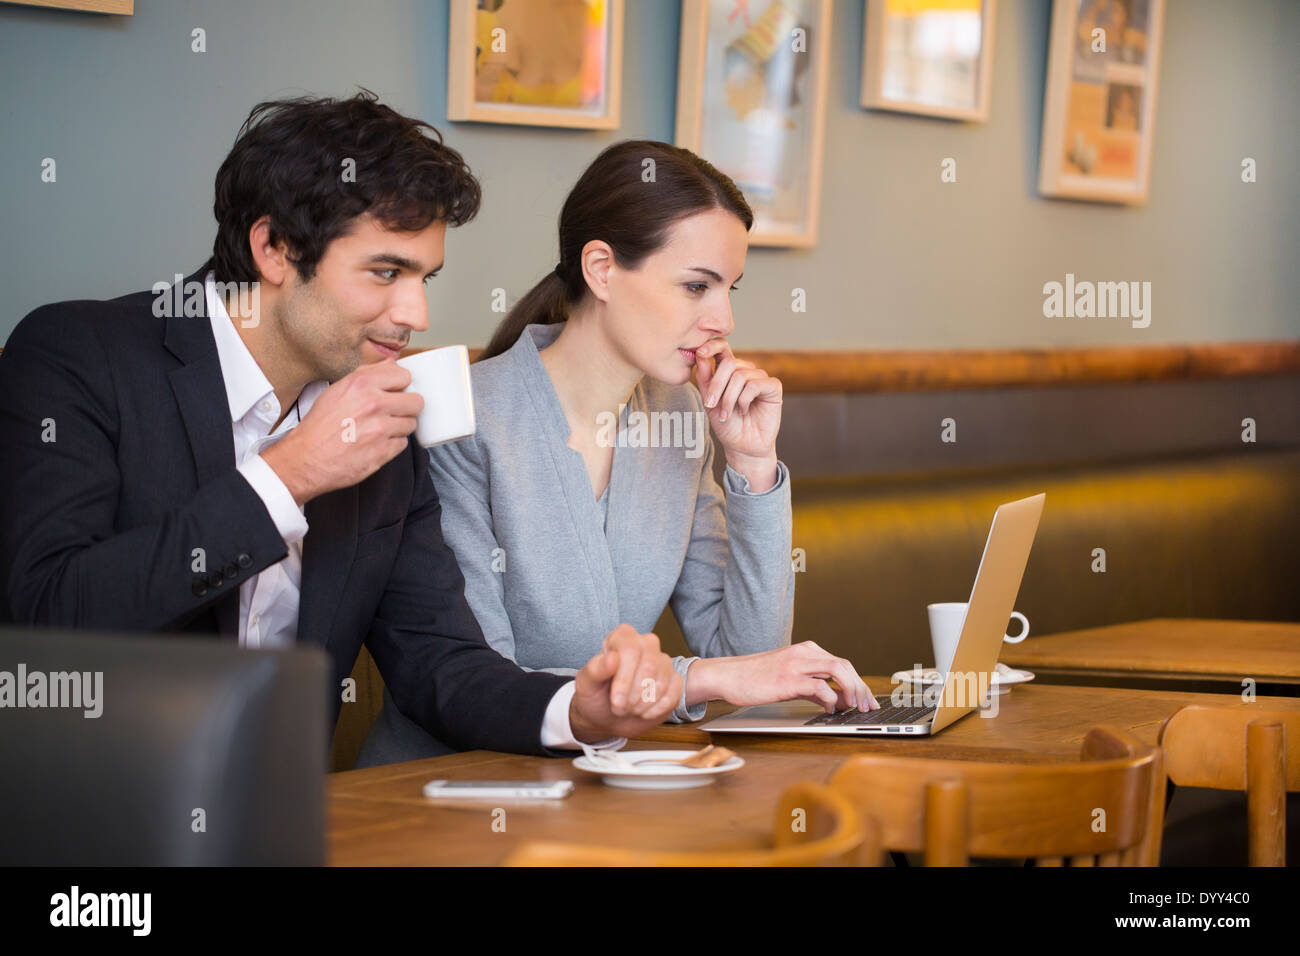 Business woman man computer colleague restaurant Stock Photo